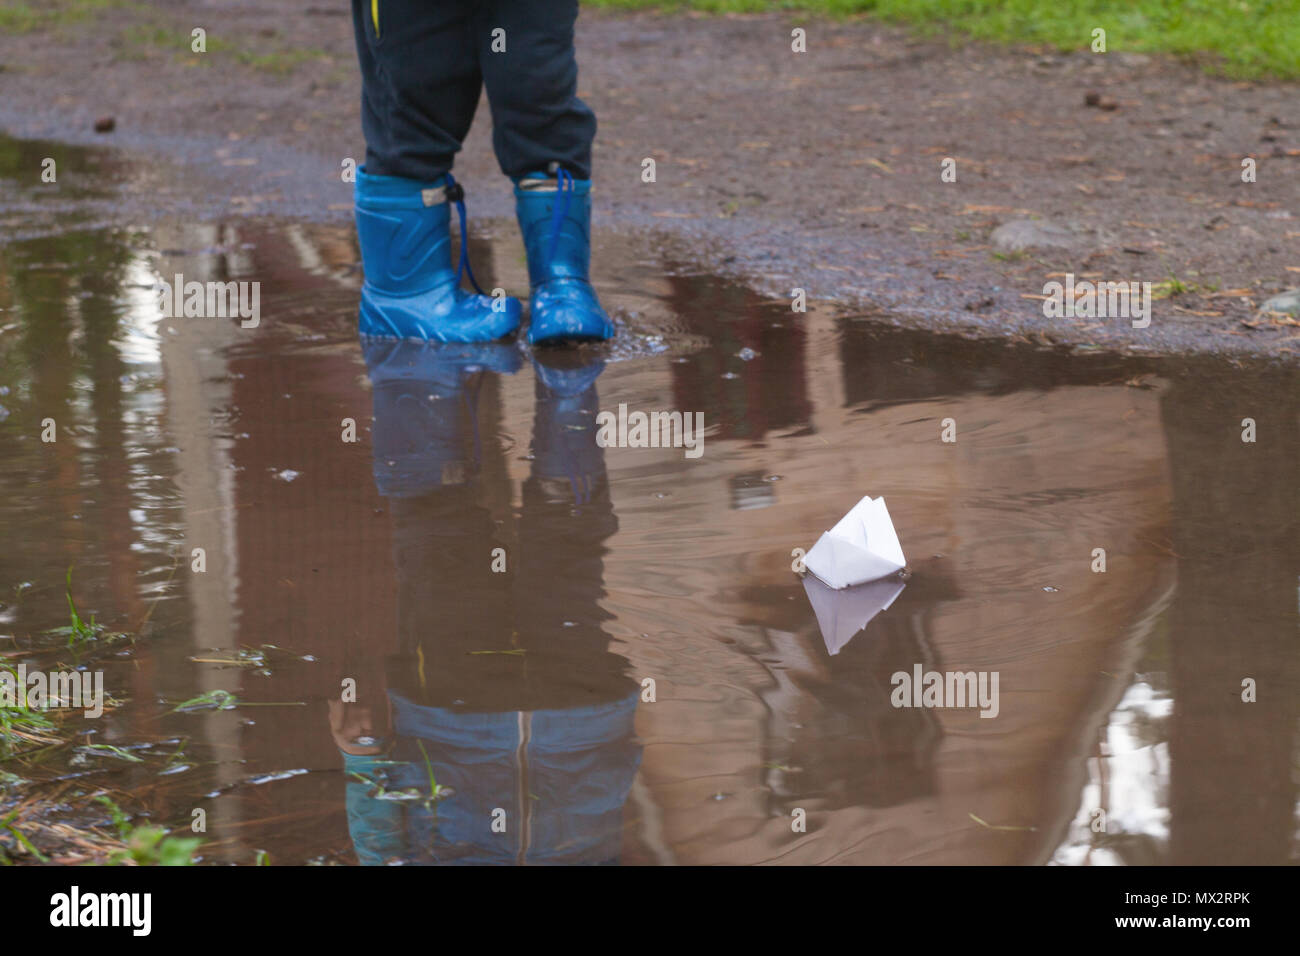 kid putting a paper boat into water - Stock Image